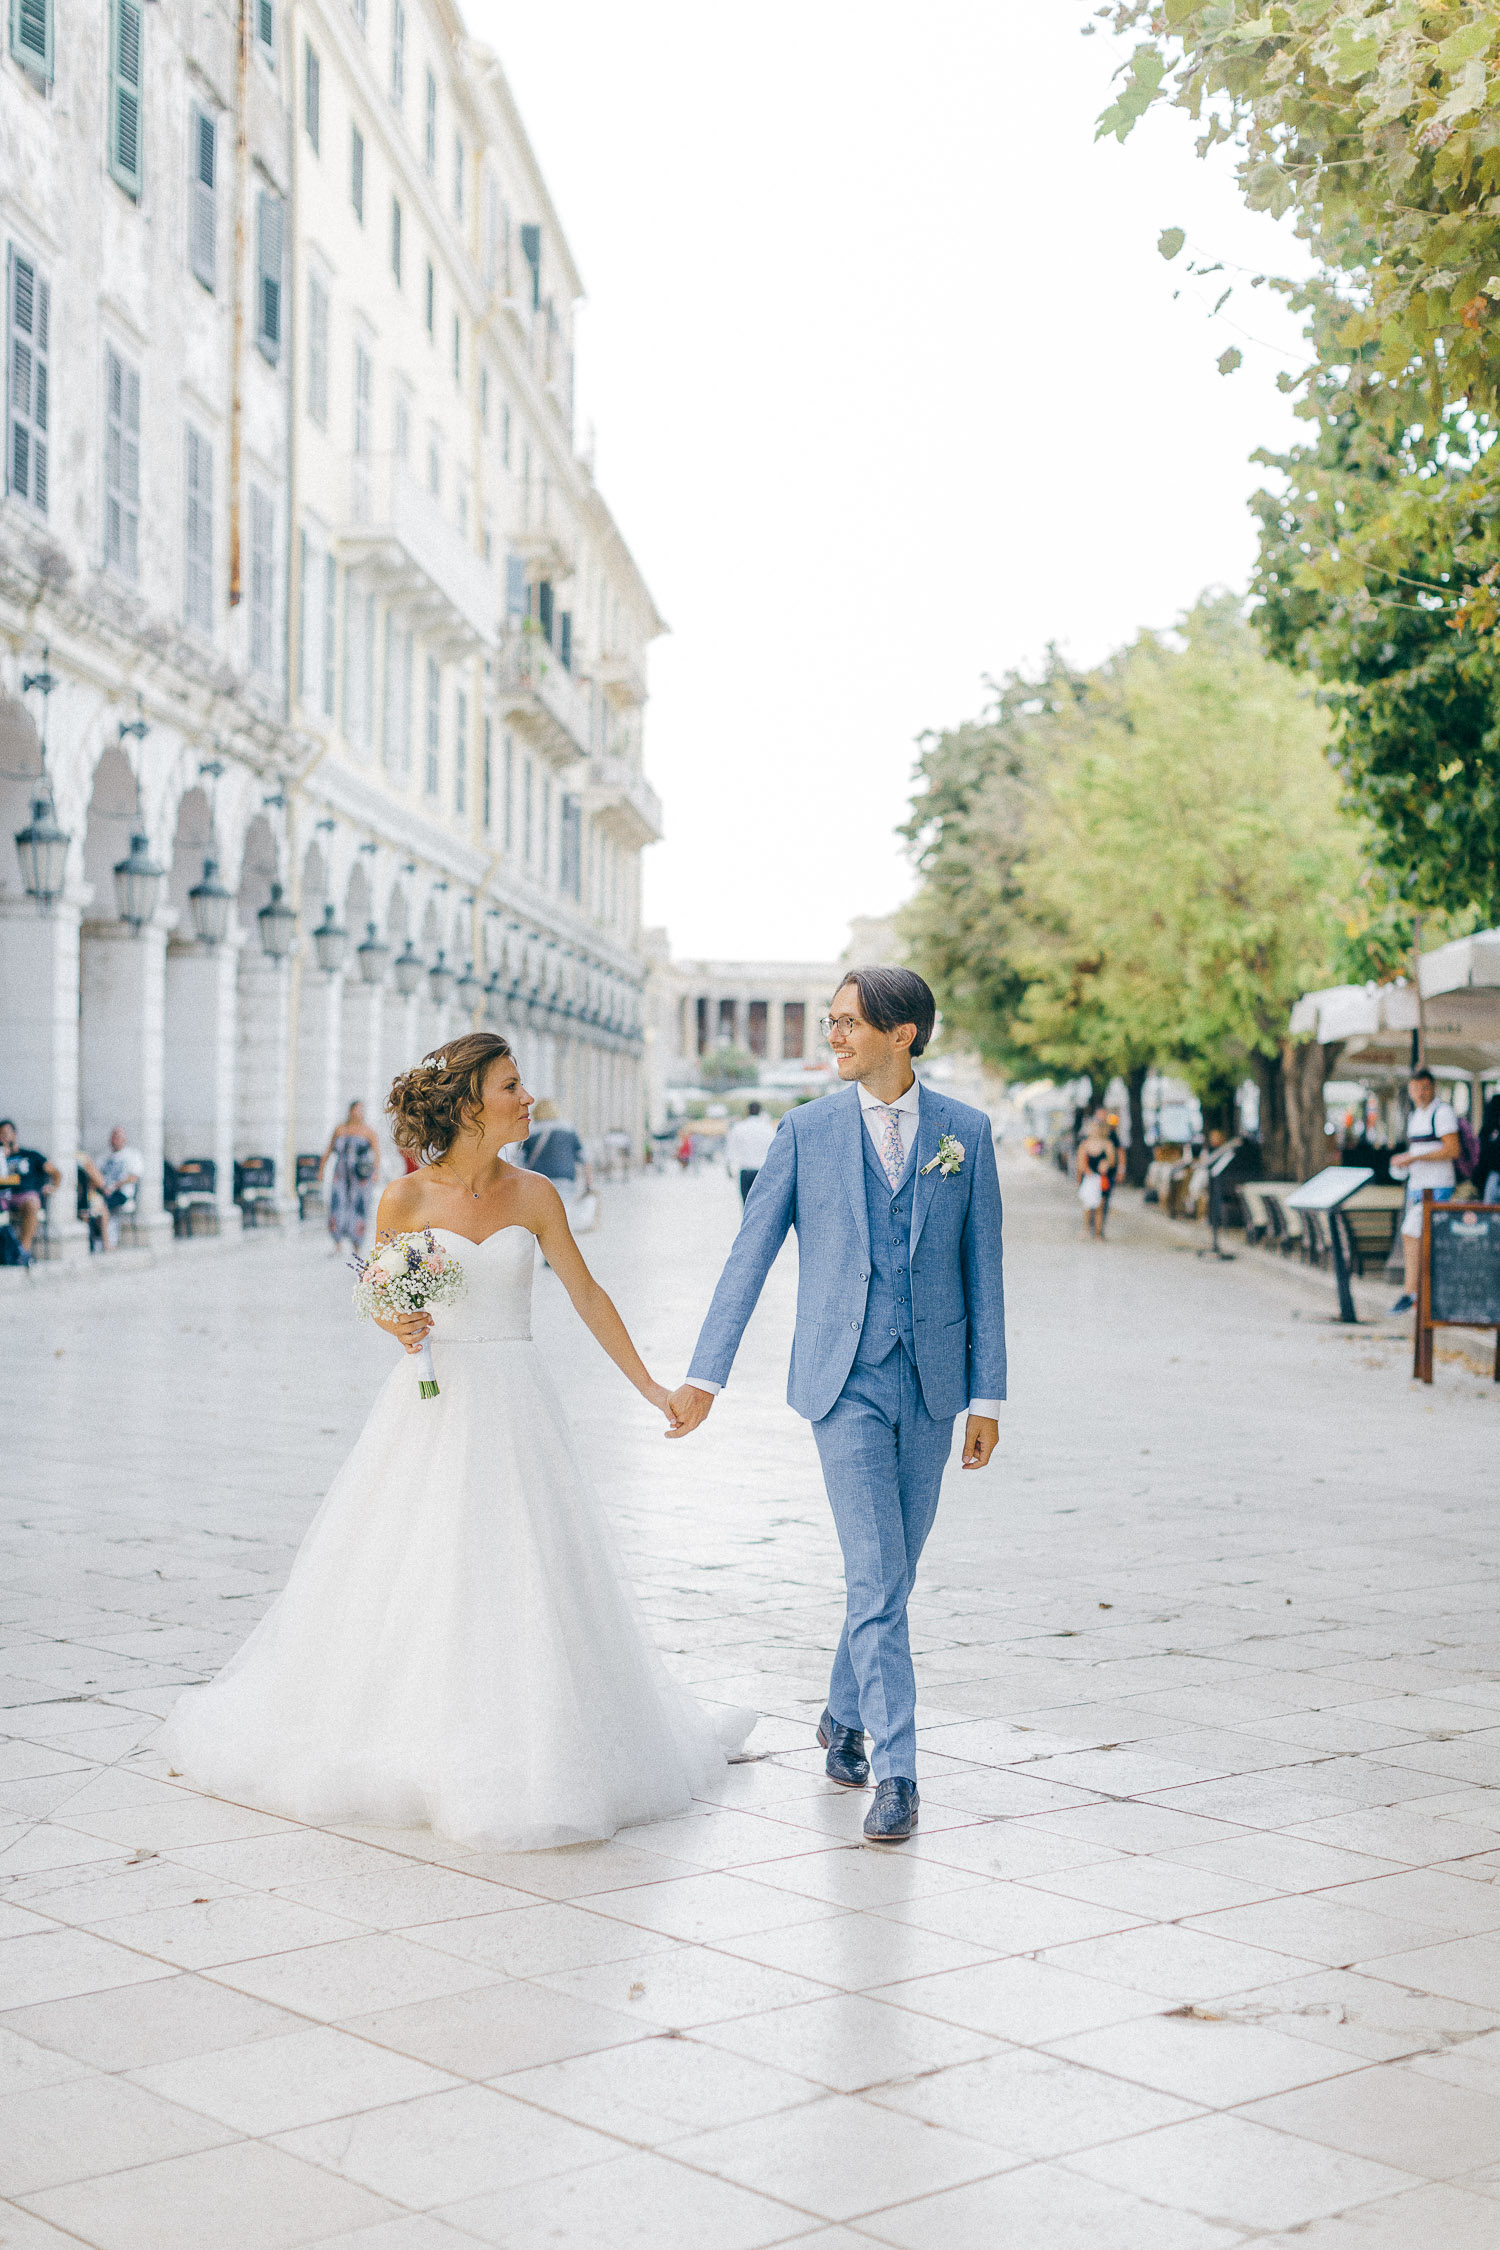 Bride and groom walking through Liston square in Corfu while post ceremonial portraits